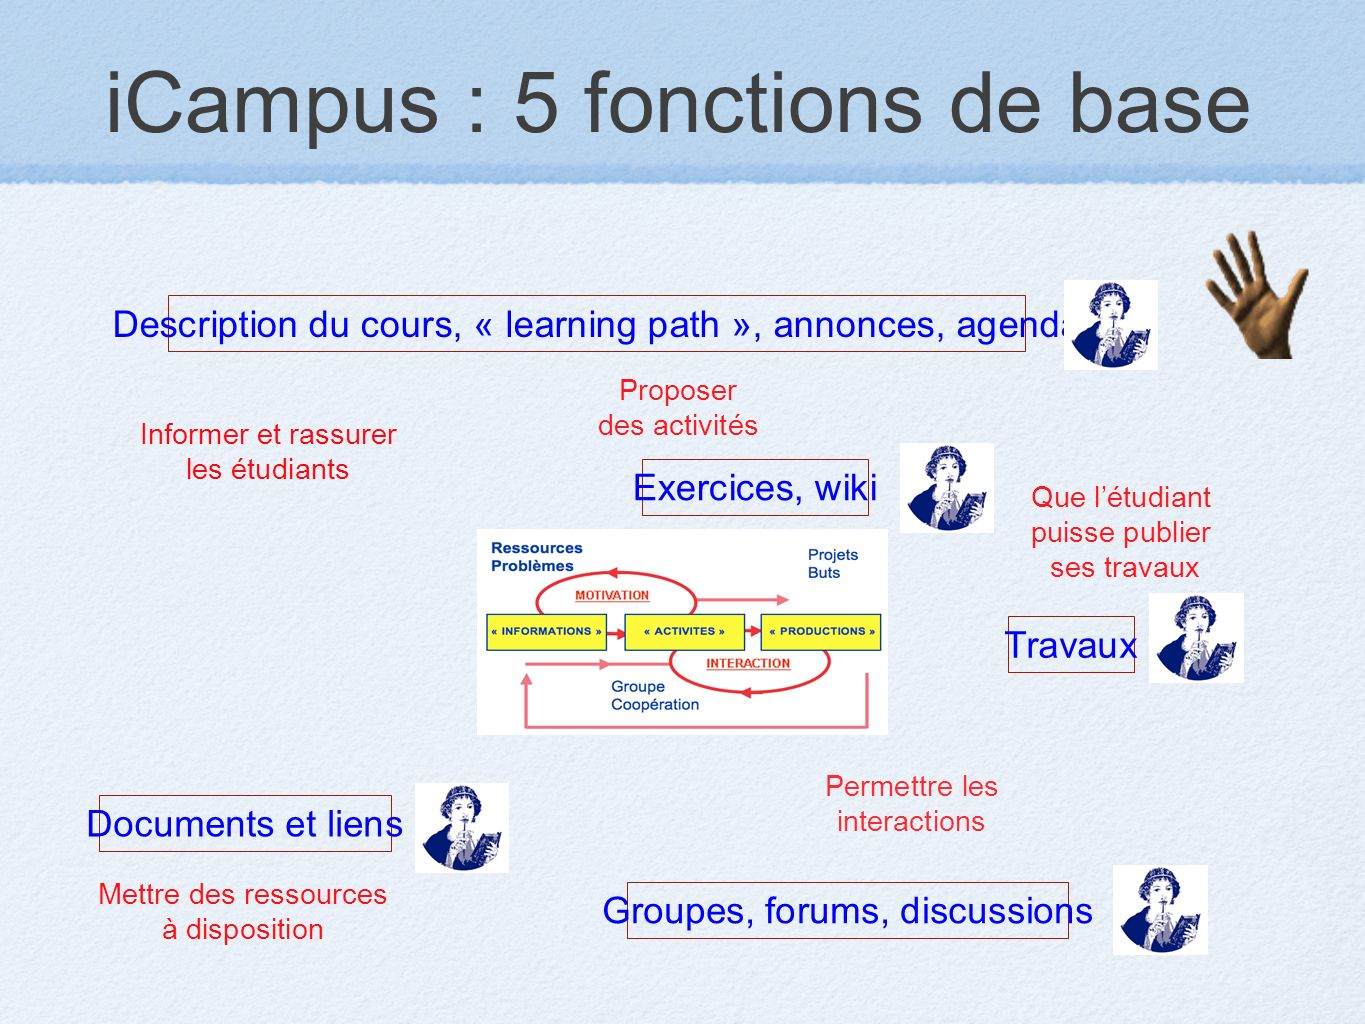 iCampus : 5 fonctions de base